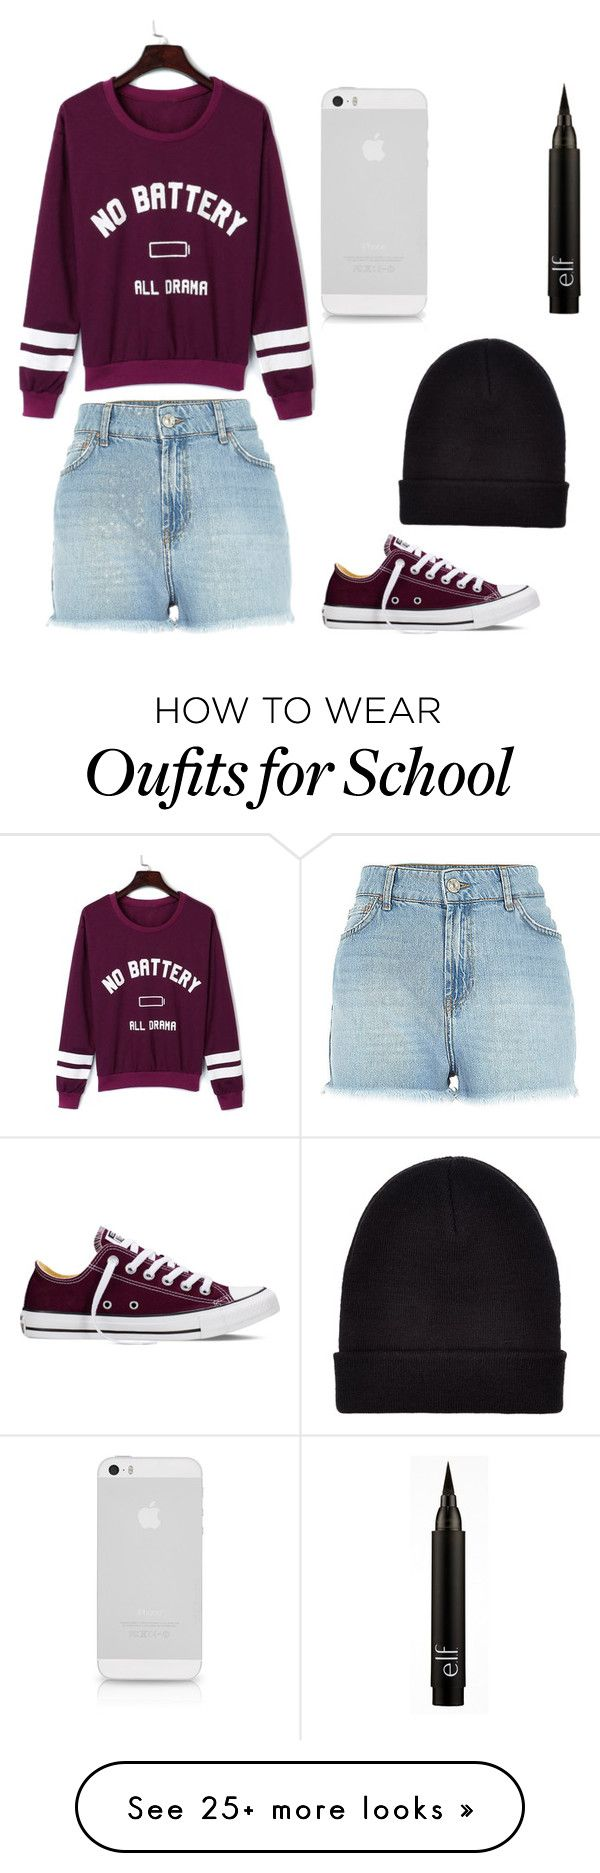 """""""Monday school day"""" by ekb-banga on Polyvore featuring WithChic, Converse and New Look"""